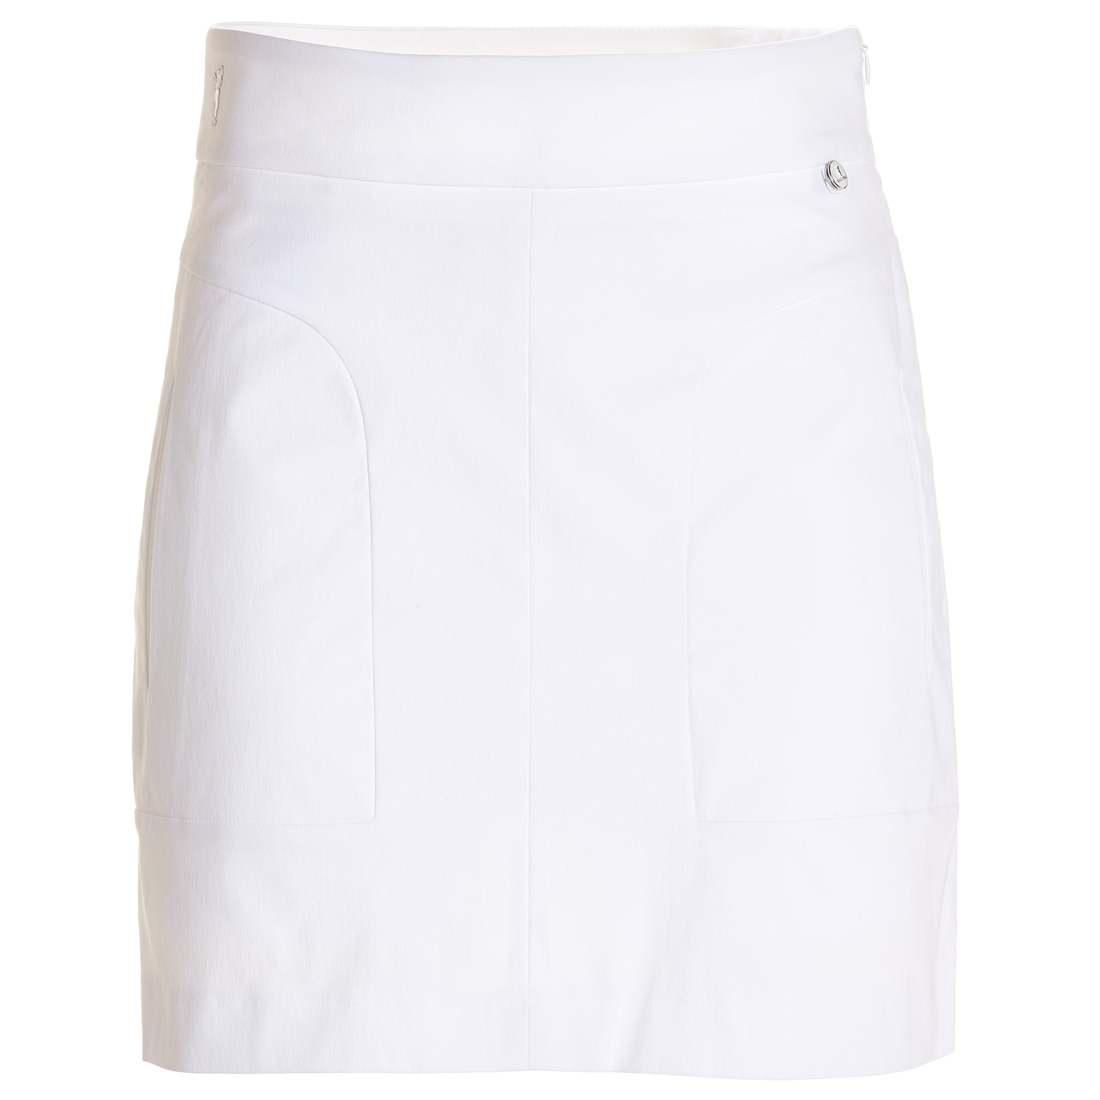 Short golf skirt in cotton stretch with UV protection in comfortable fit